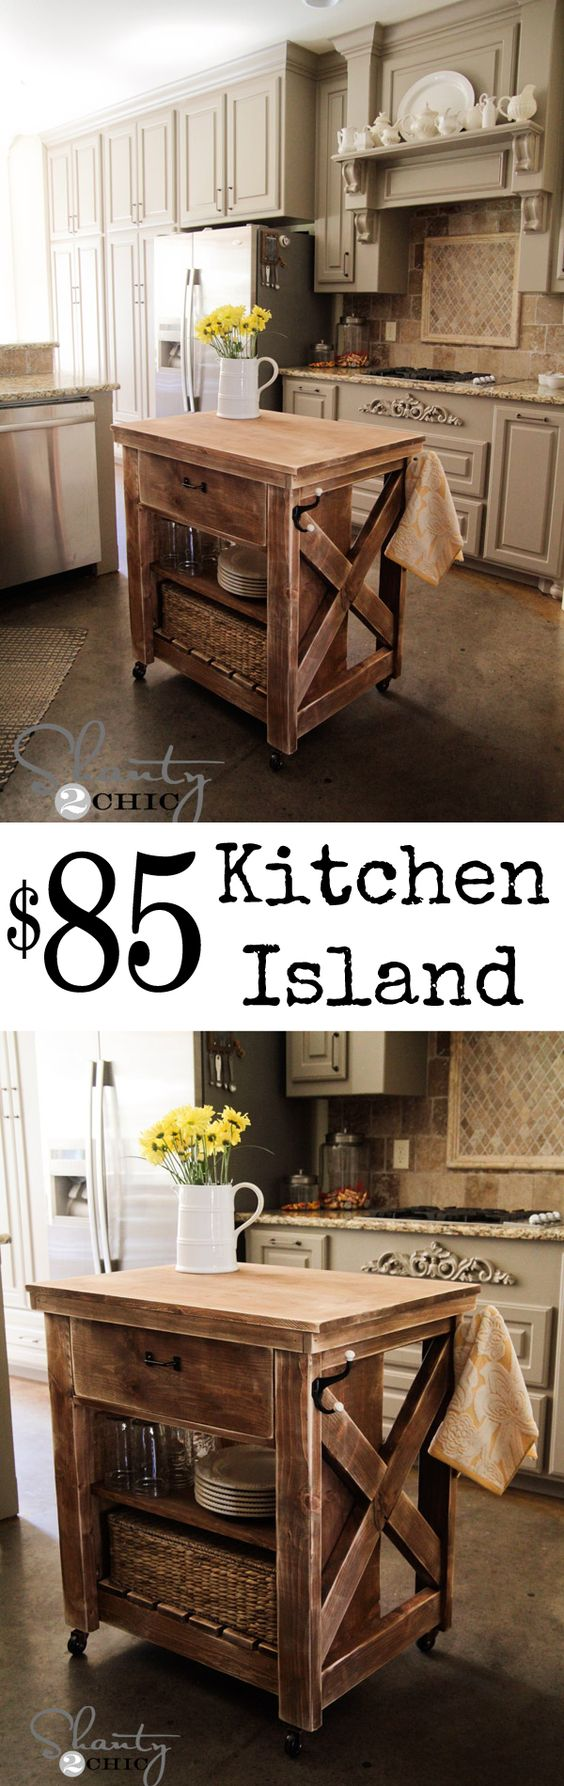 Kitchen island inspired by pottery barn pottery islands for Pottery barn style kitchen ideas